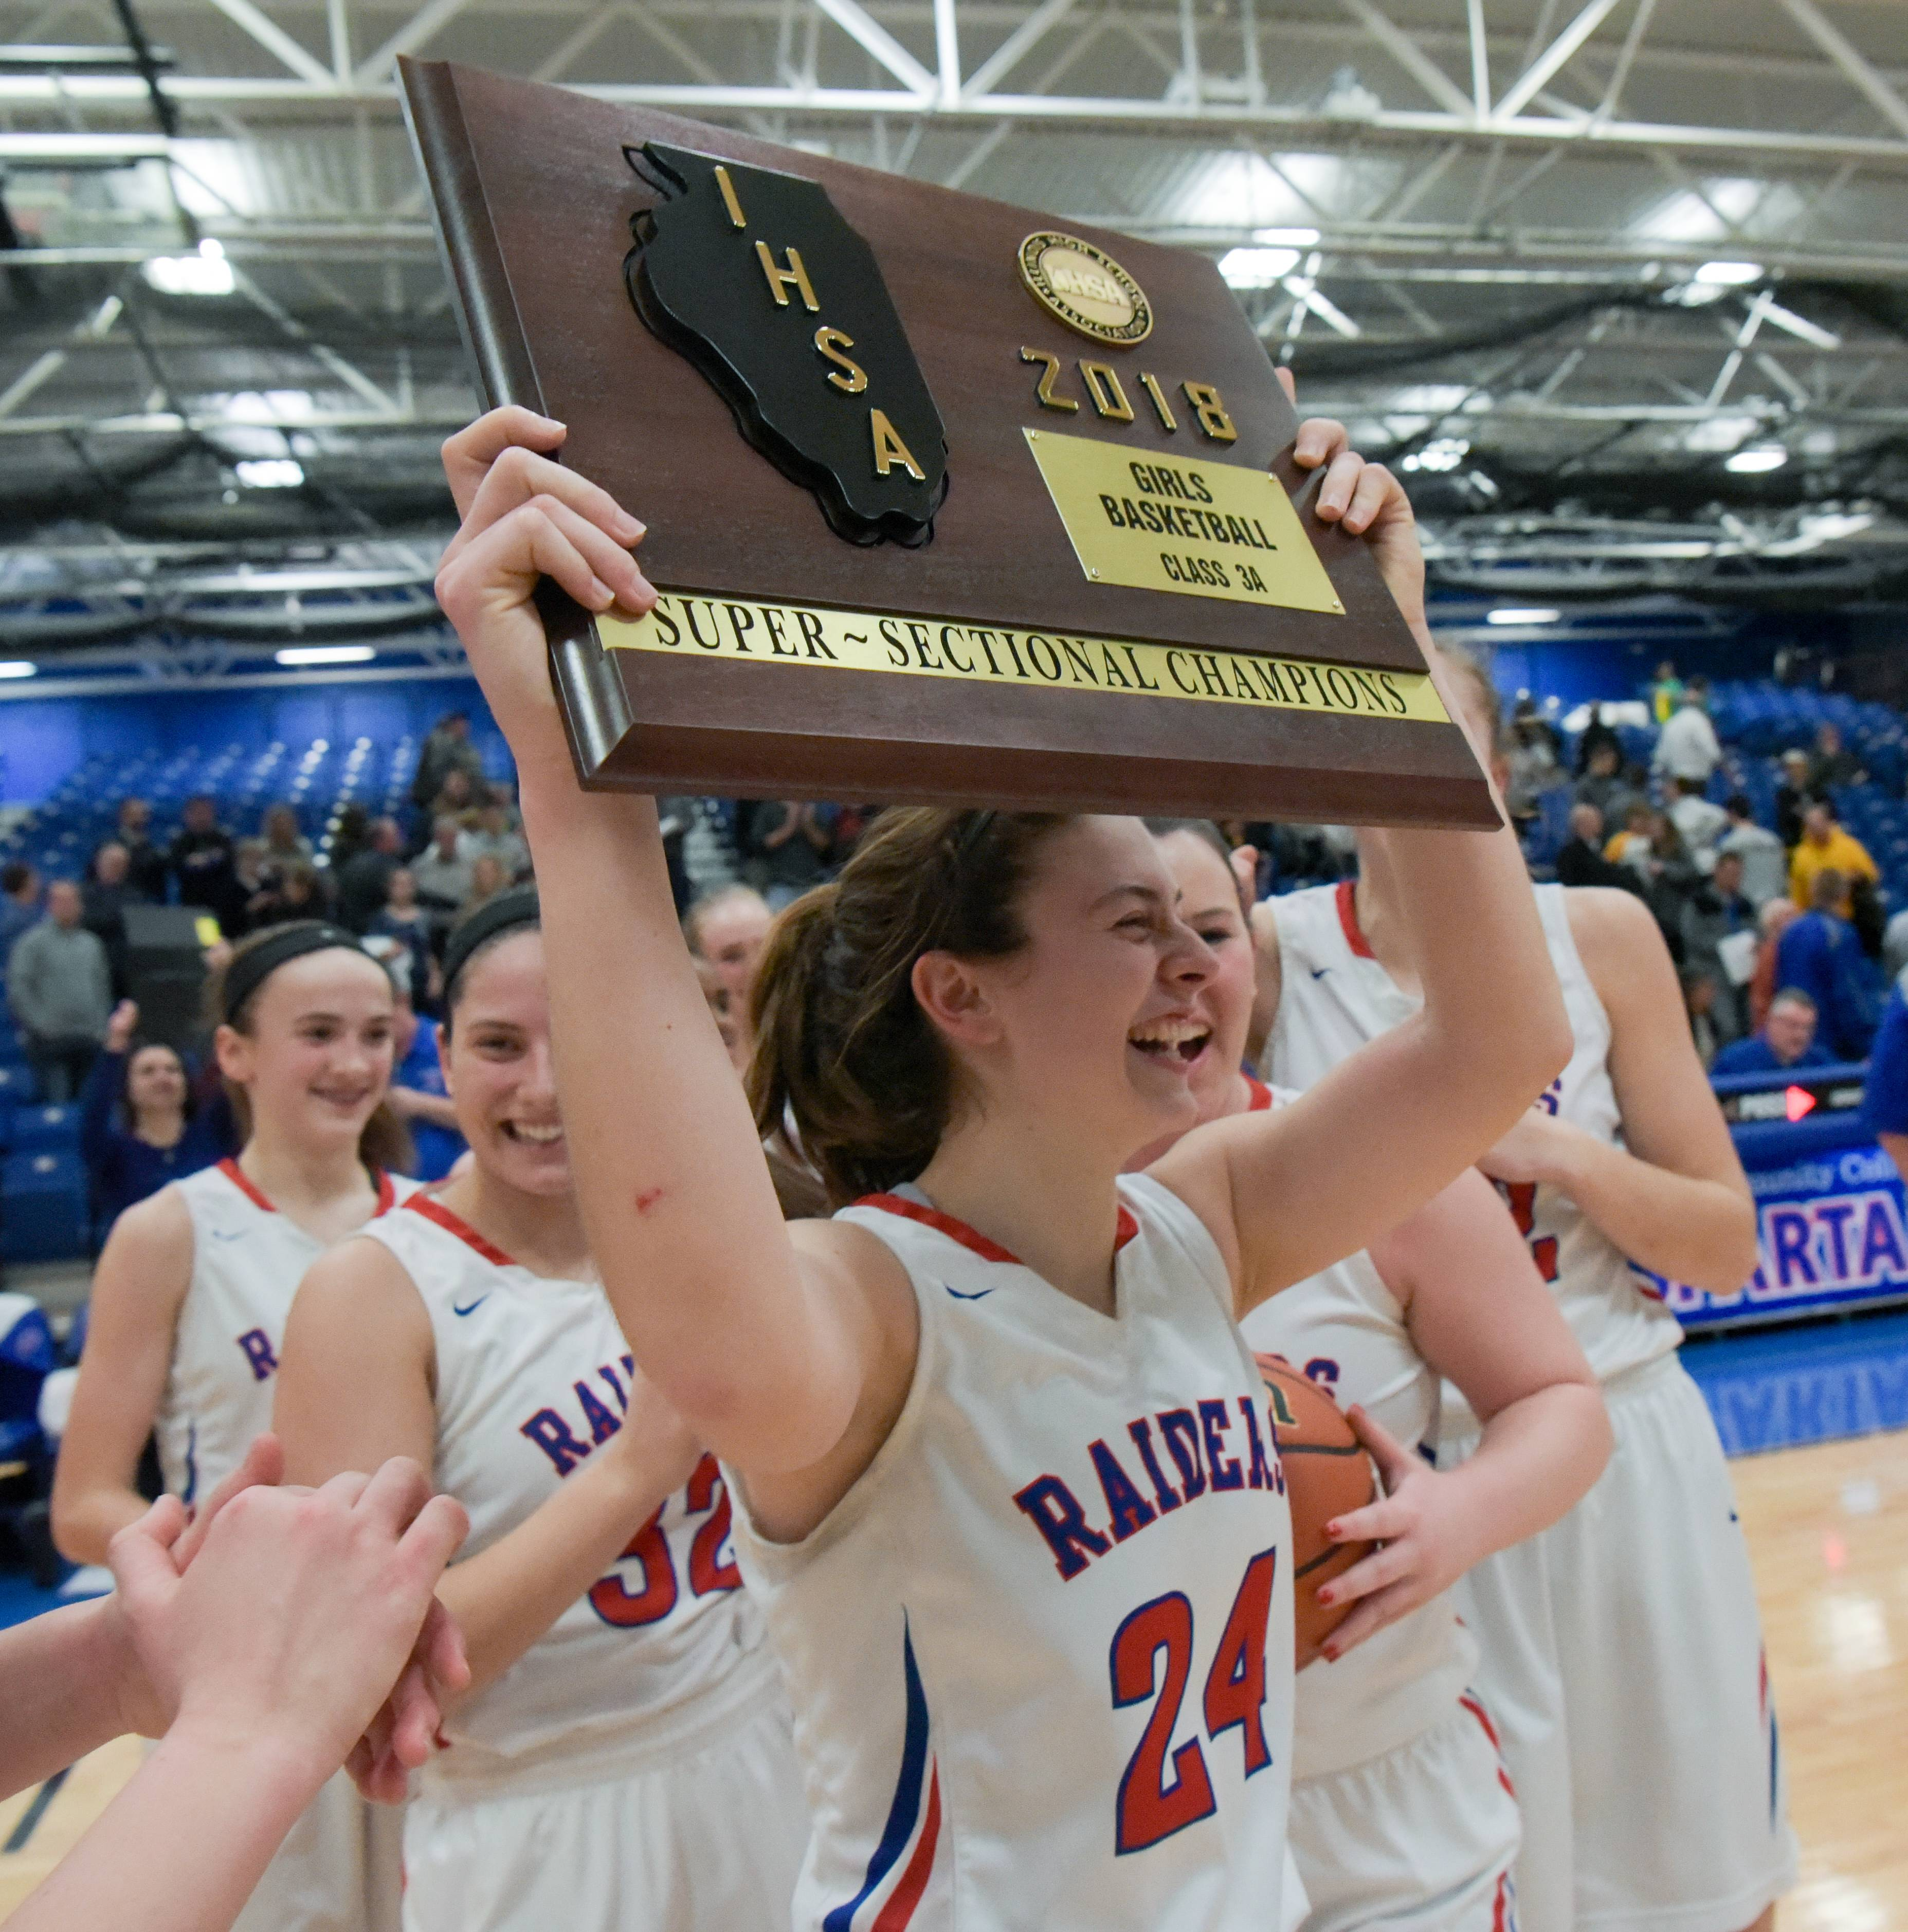 Glenbard South senior guard Sarah Cohen holds up the Class 3A supersectional championship plaque after defeating Carmel 48-33 on Monday, Feb. 26, at Elgin Community College.